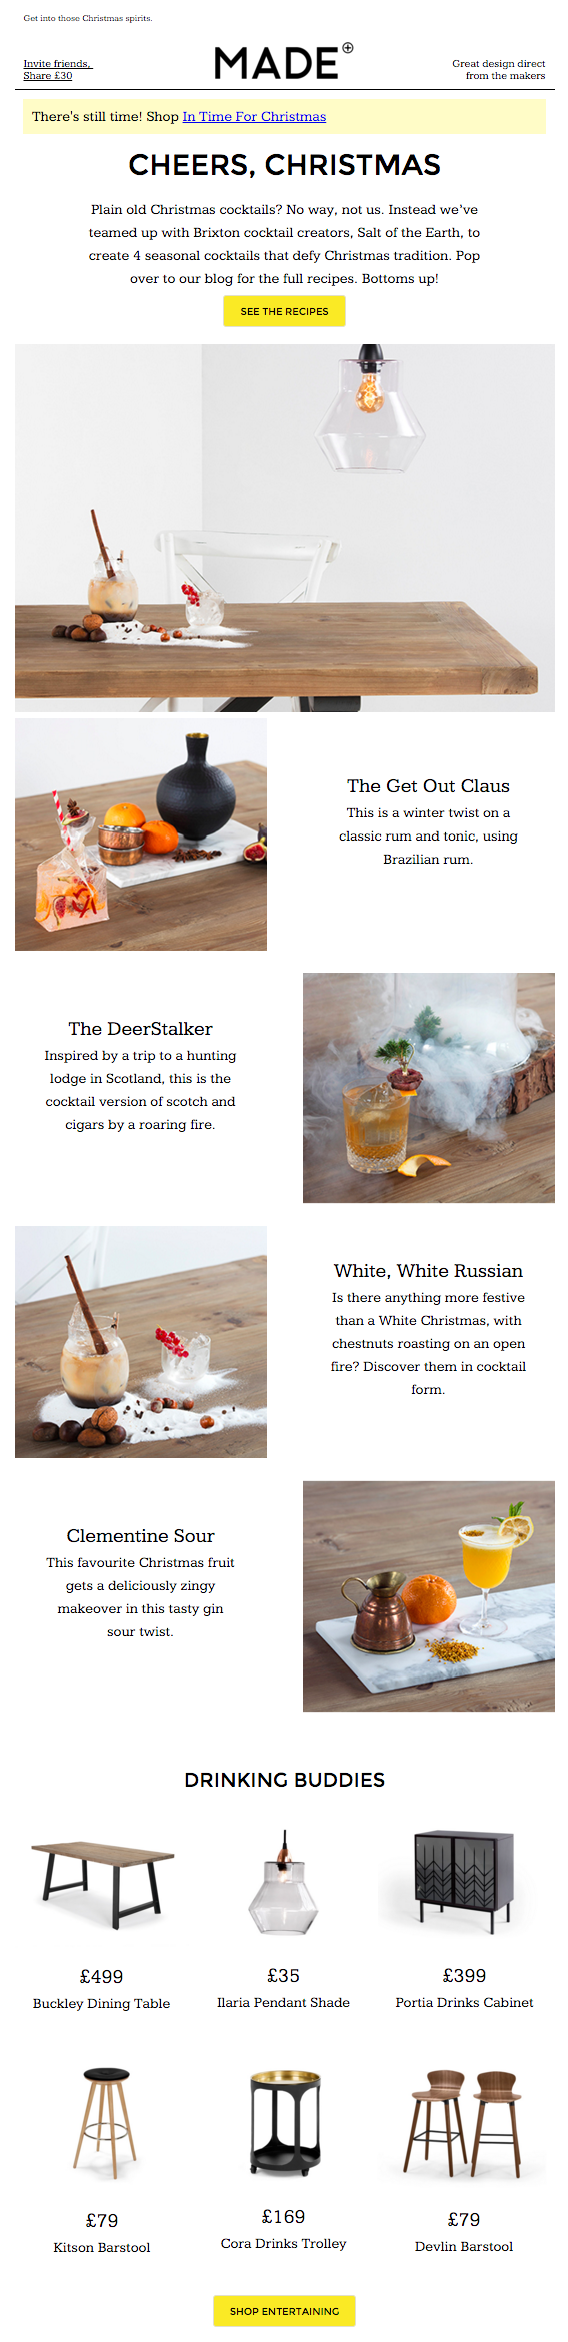 4_Cocktails_to_jingle_your_bells_this_party_season-3.png